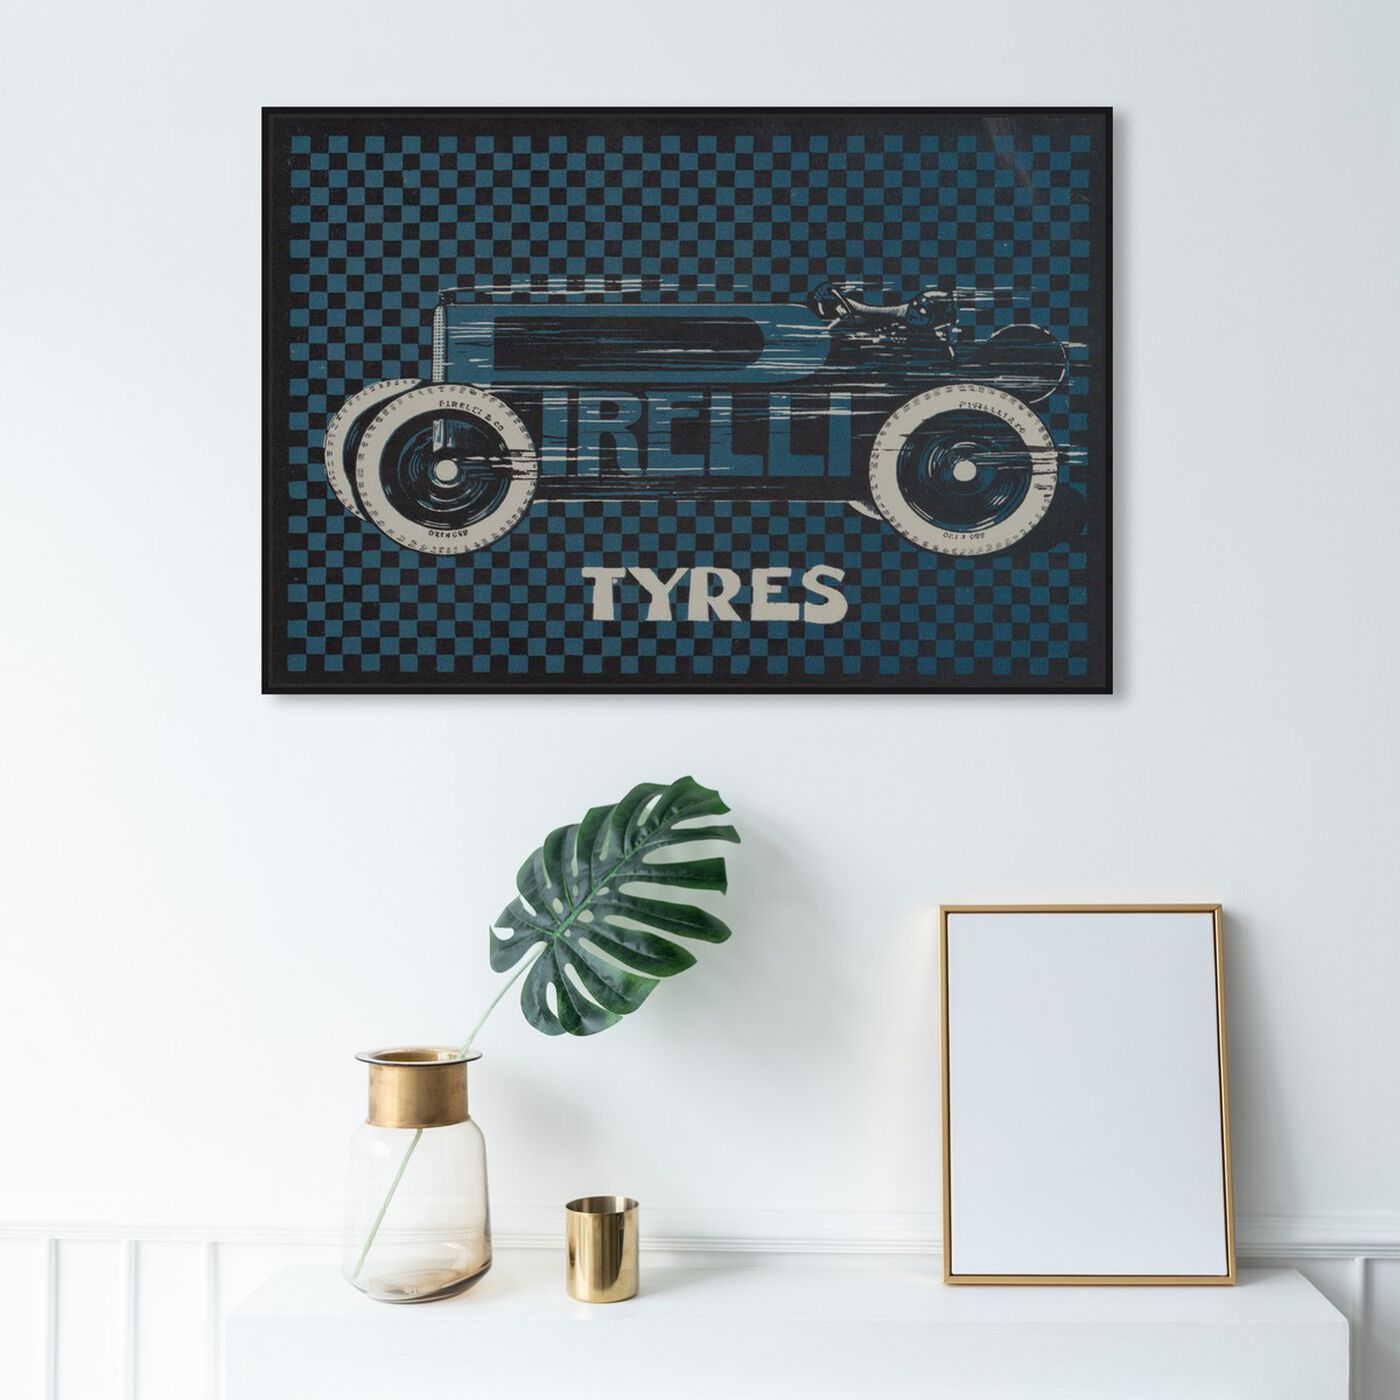 Hanging view of Tyres Checkered featuring transportation and automobiles art.